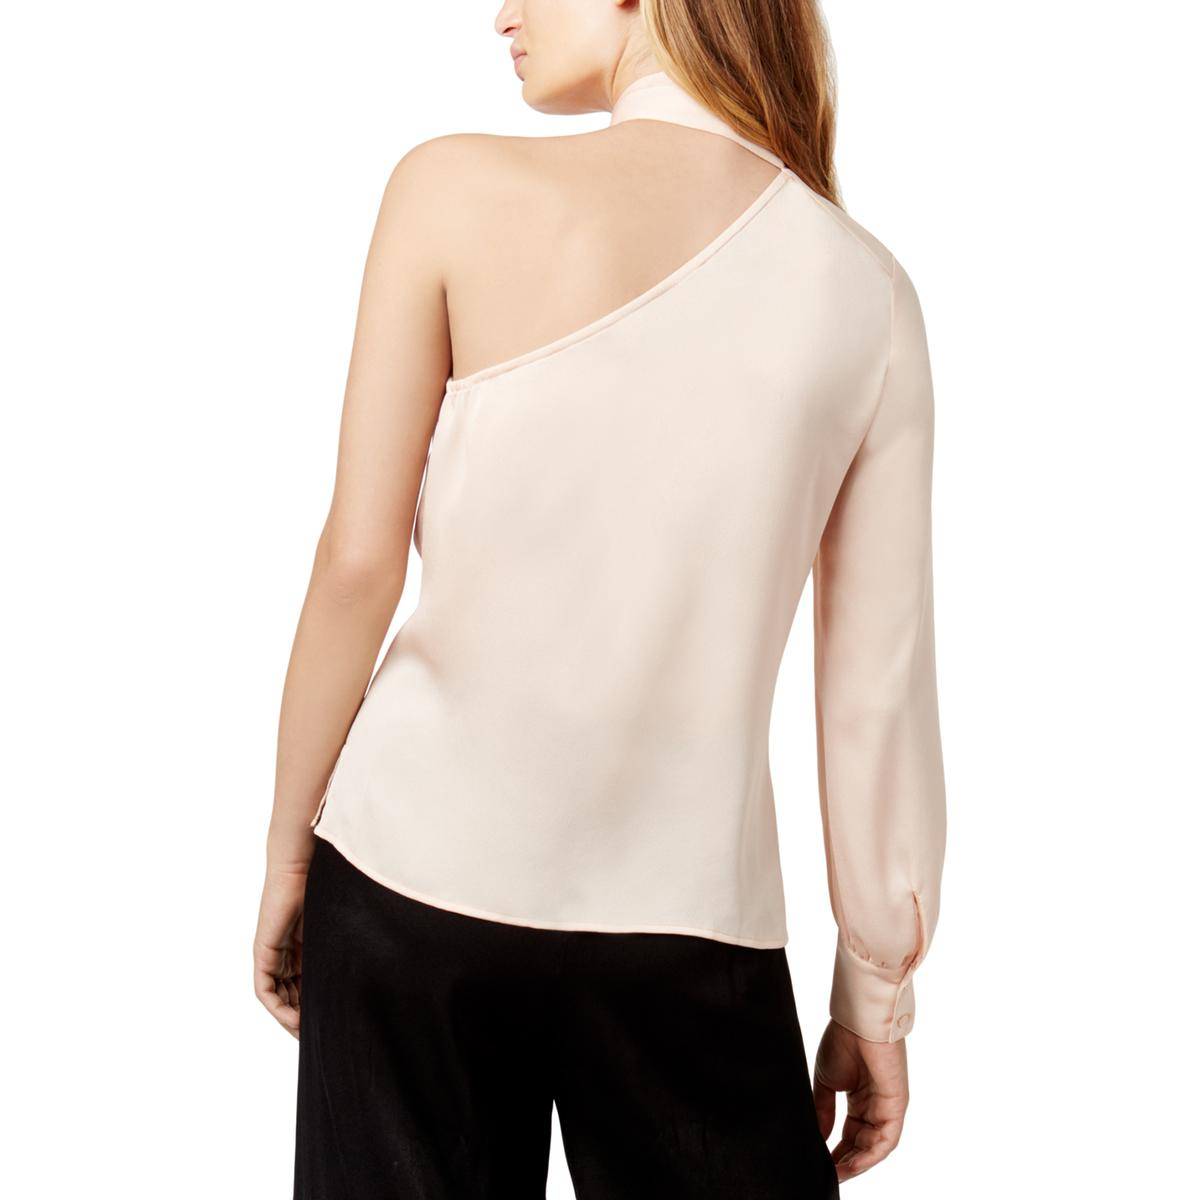 c850304924aae 1.State Womens One Shoulder Long Sleeves Tie Neck Blouse Top BHFO ...